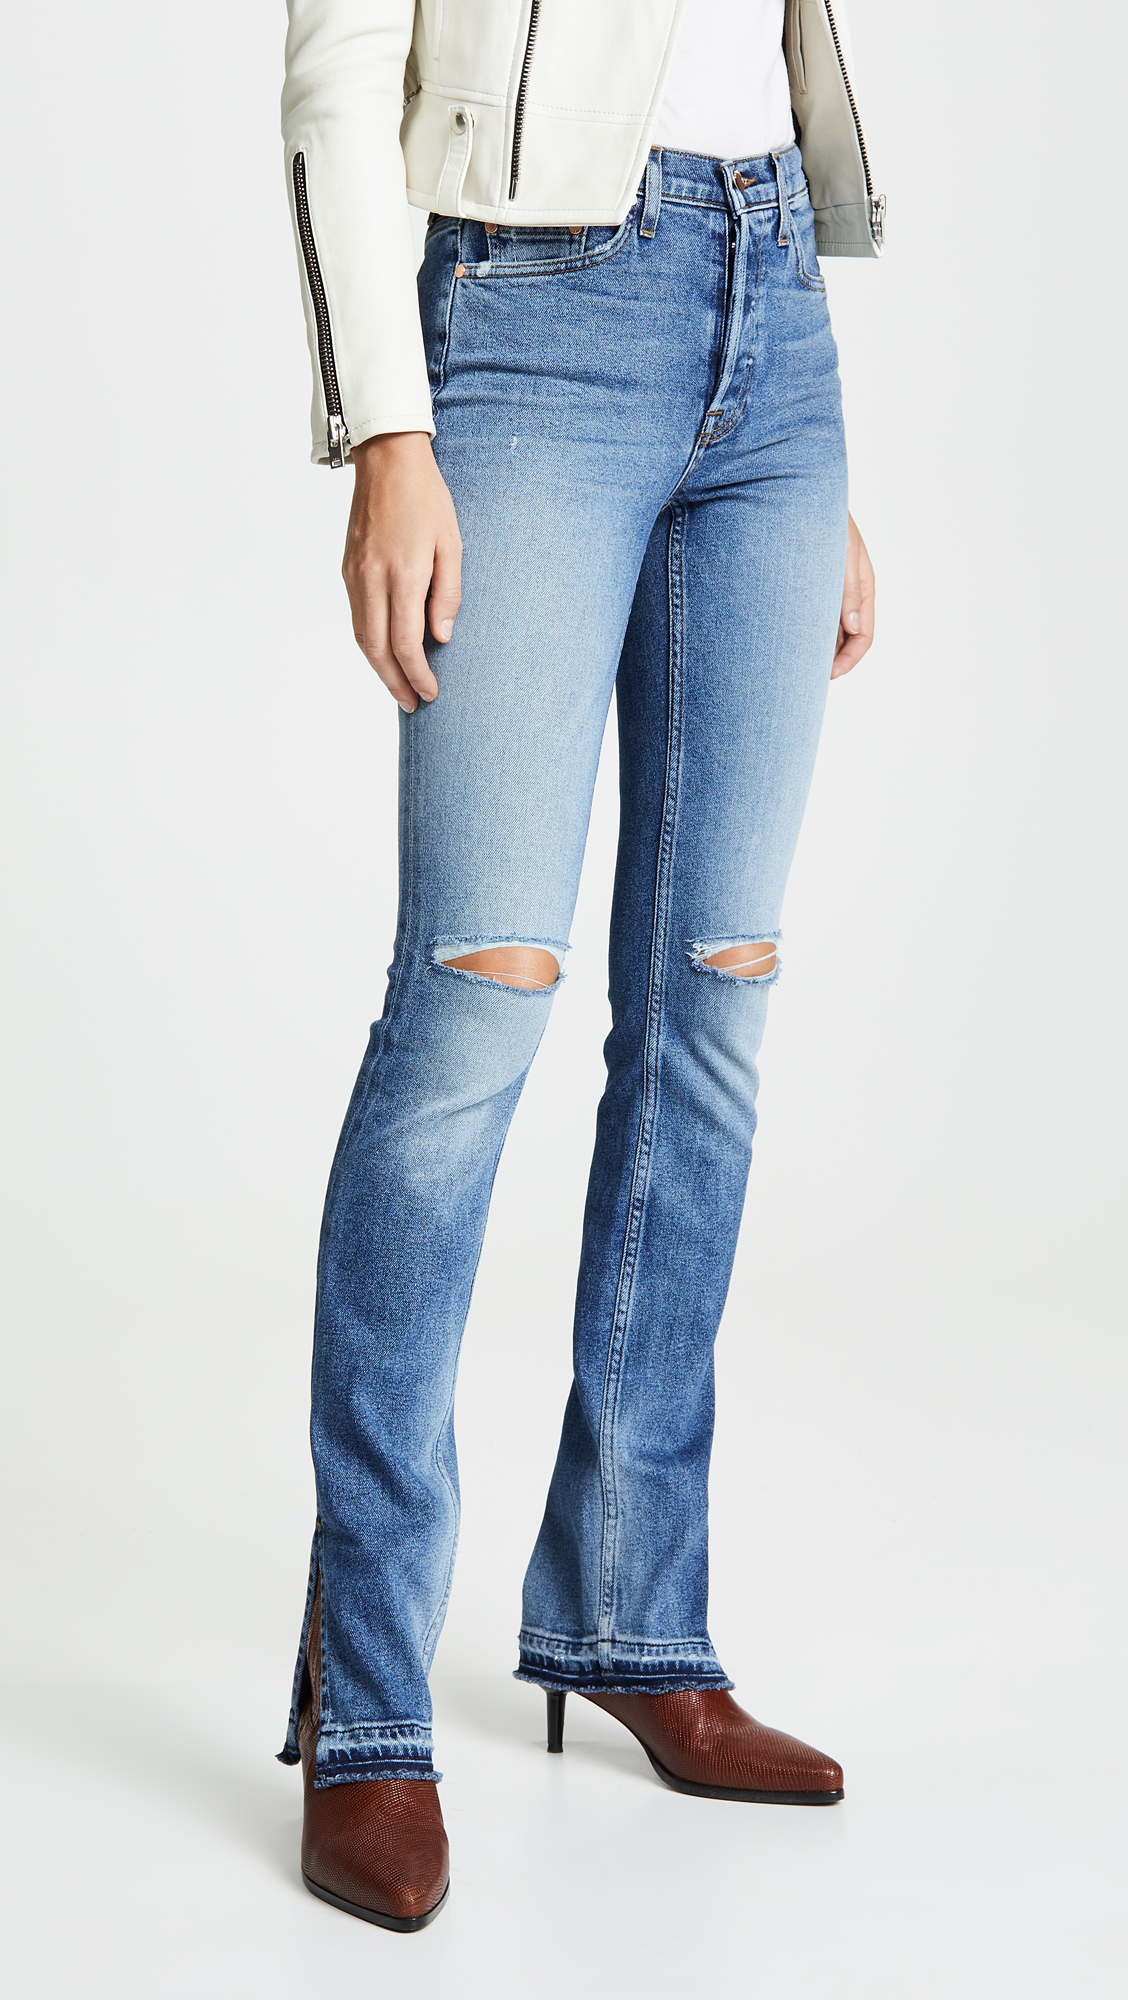 97a3cde814f96 Denim   Jean Trends That Are Going To Be Huge In 2019